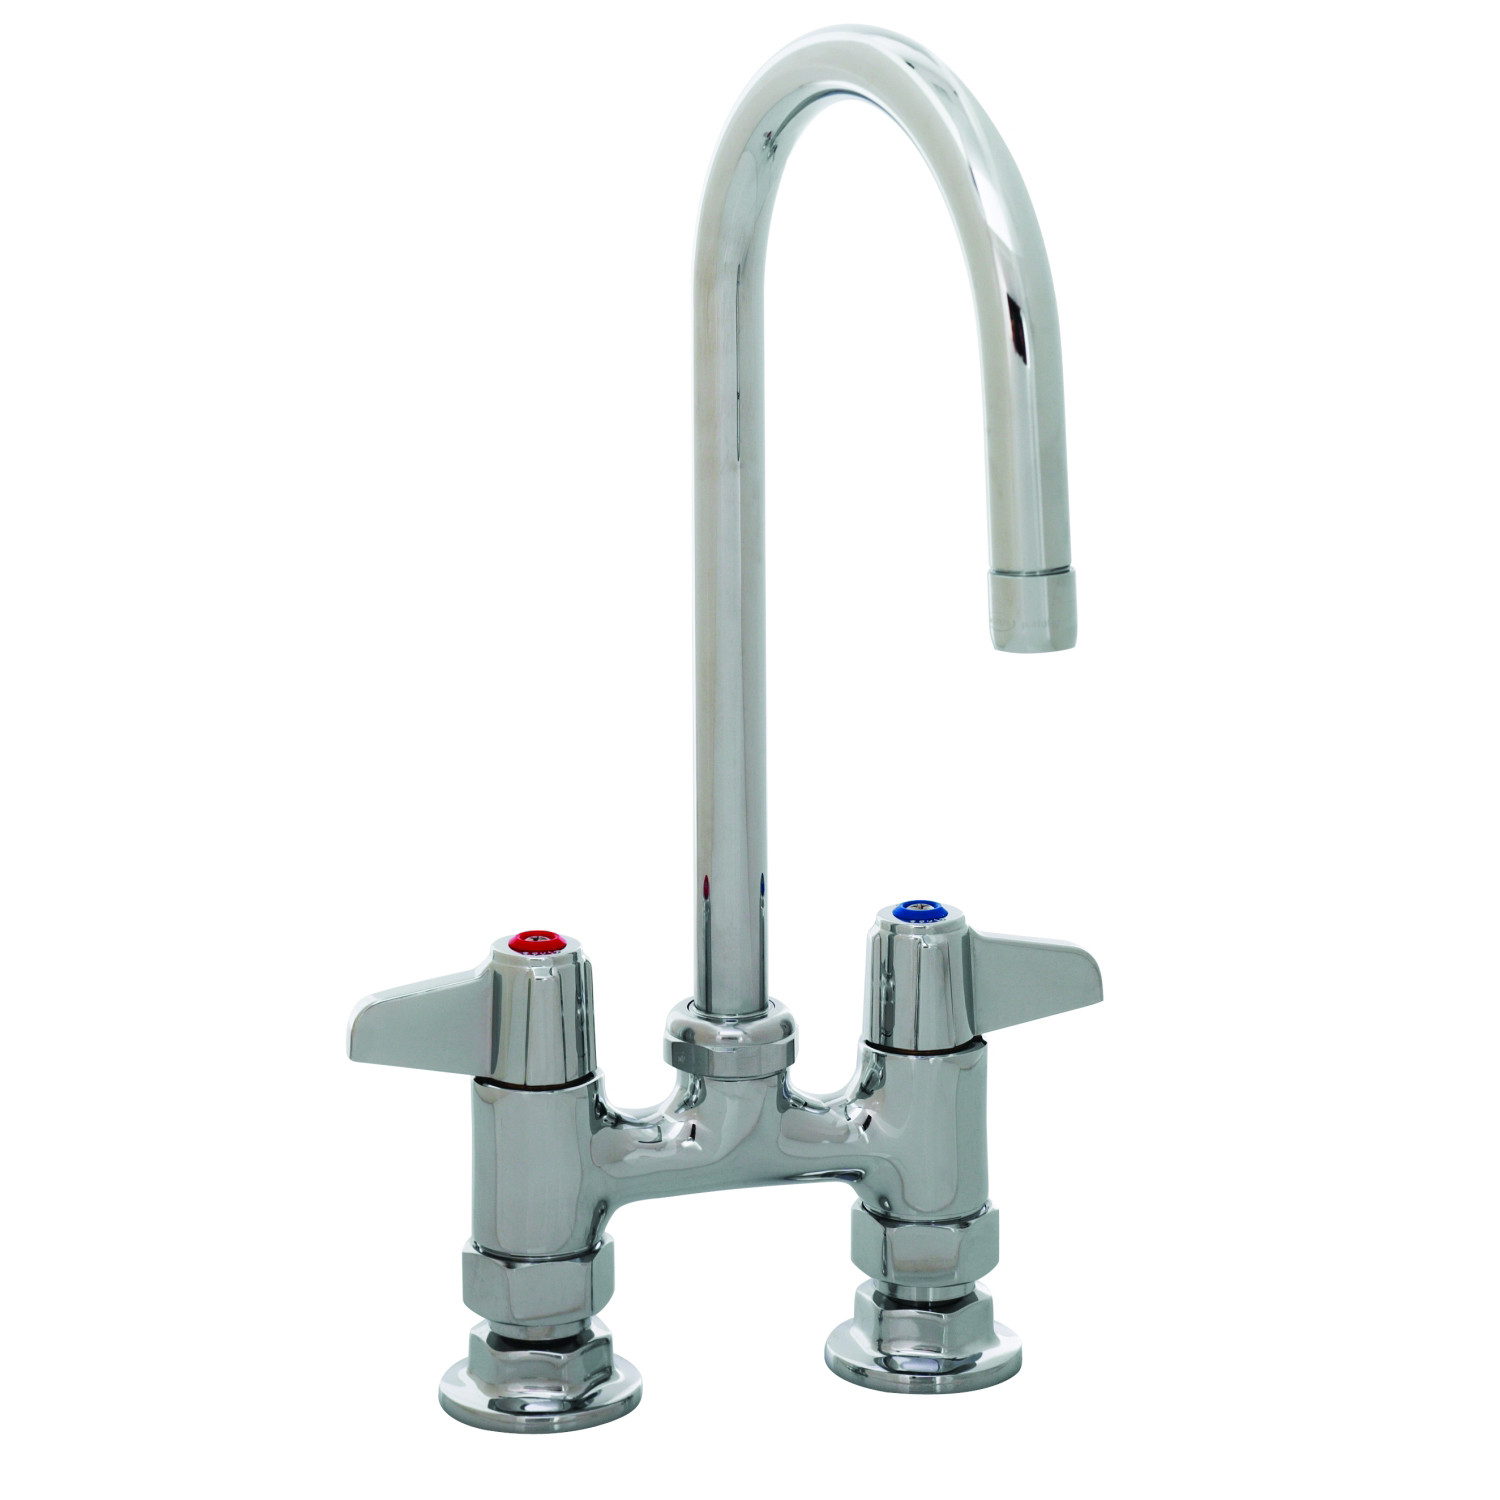 faucet faucets hole body beautiful mount of with single new chrome s cartridges deck types equip polished mixing tamps t brass plated different manual